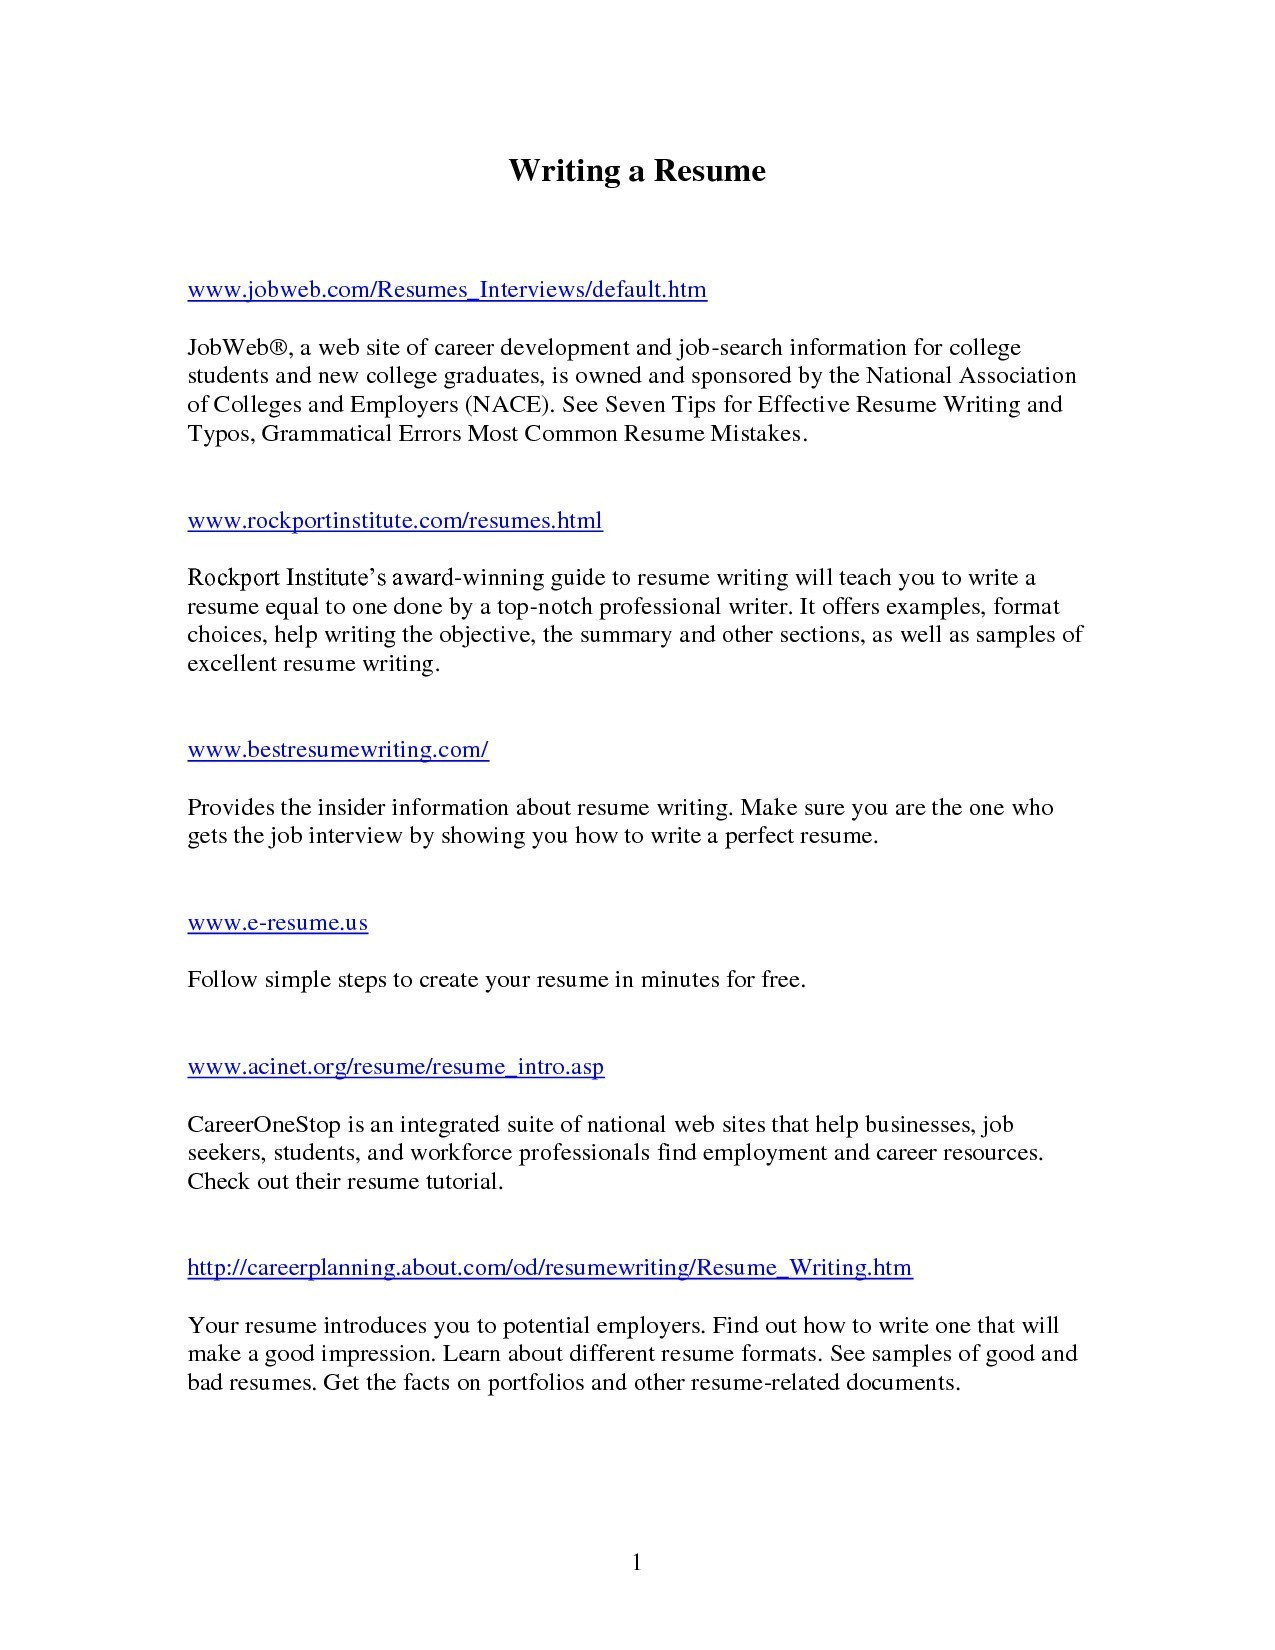 Hiring Letter Template - Stunning Hiring Letter for A New Employee